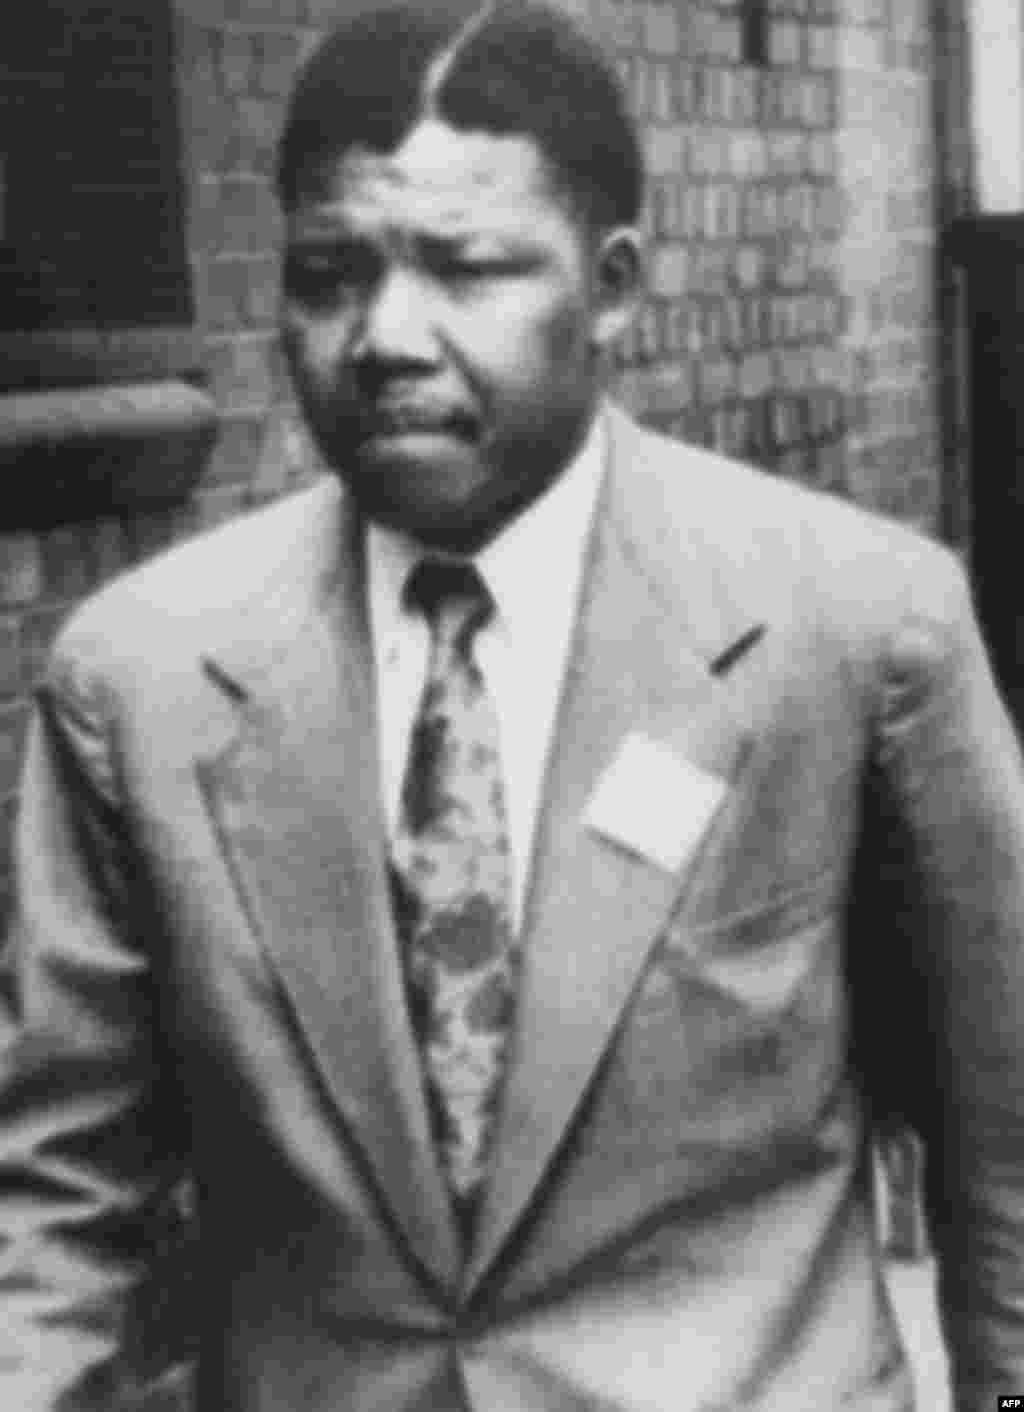 Nelson Mandela in the early 1960s before he was sentenced to life imprisonment for sabotage